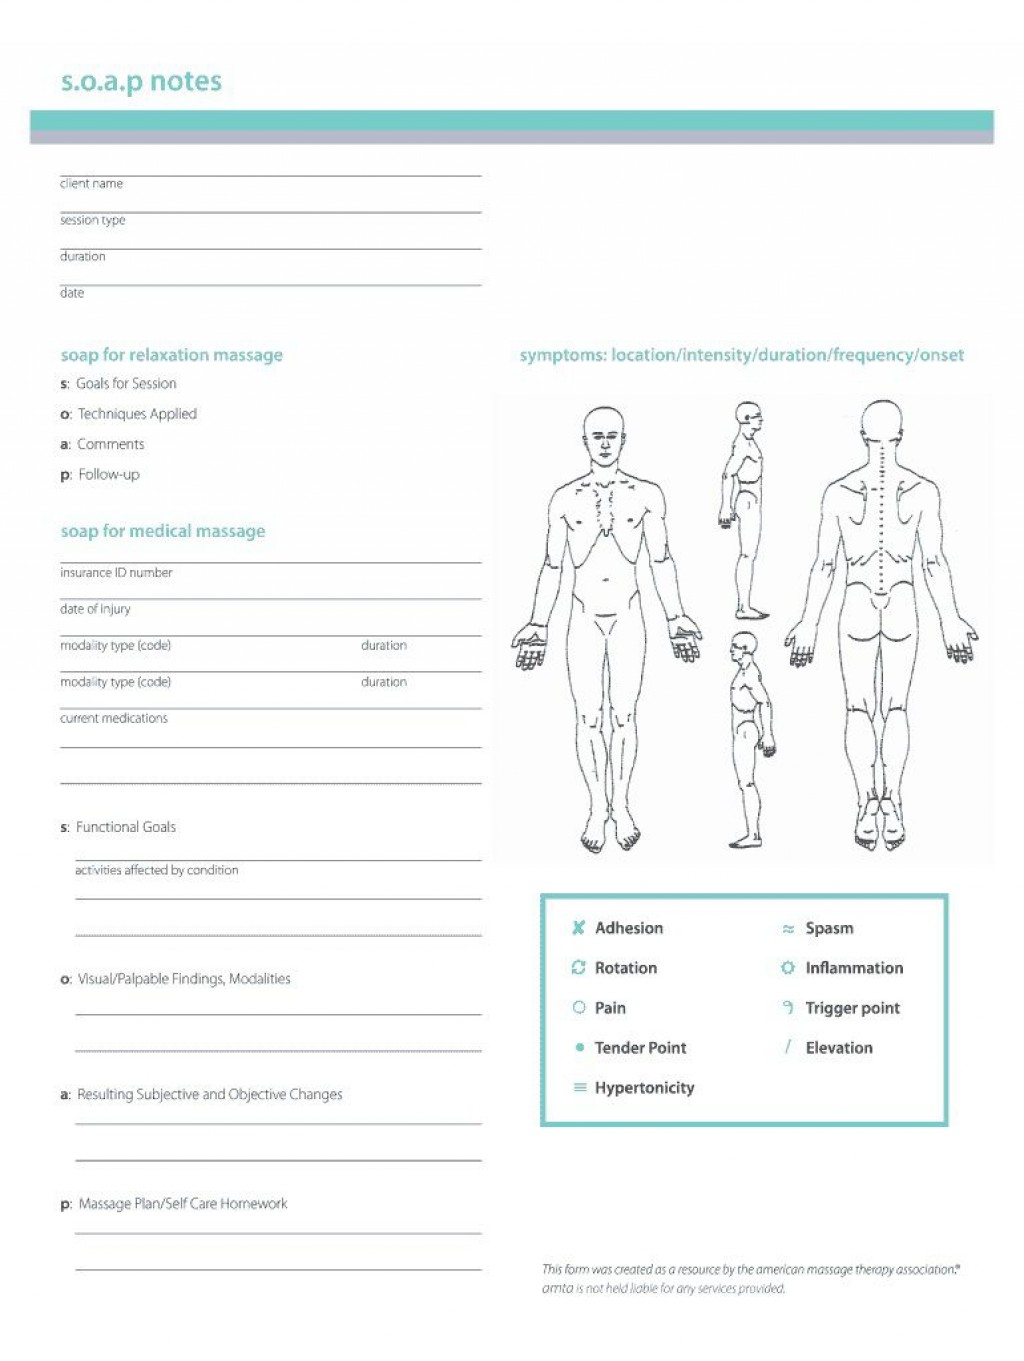 002 Rare Soap Note Template Pdf High Resolution  Massage Free ChiropracticLarge